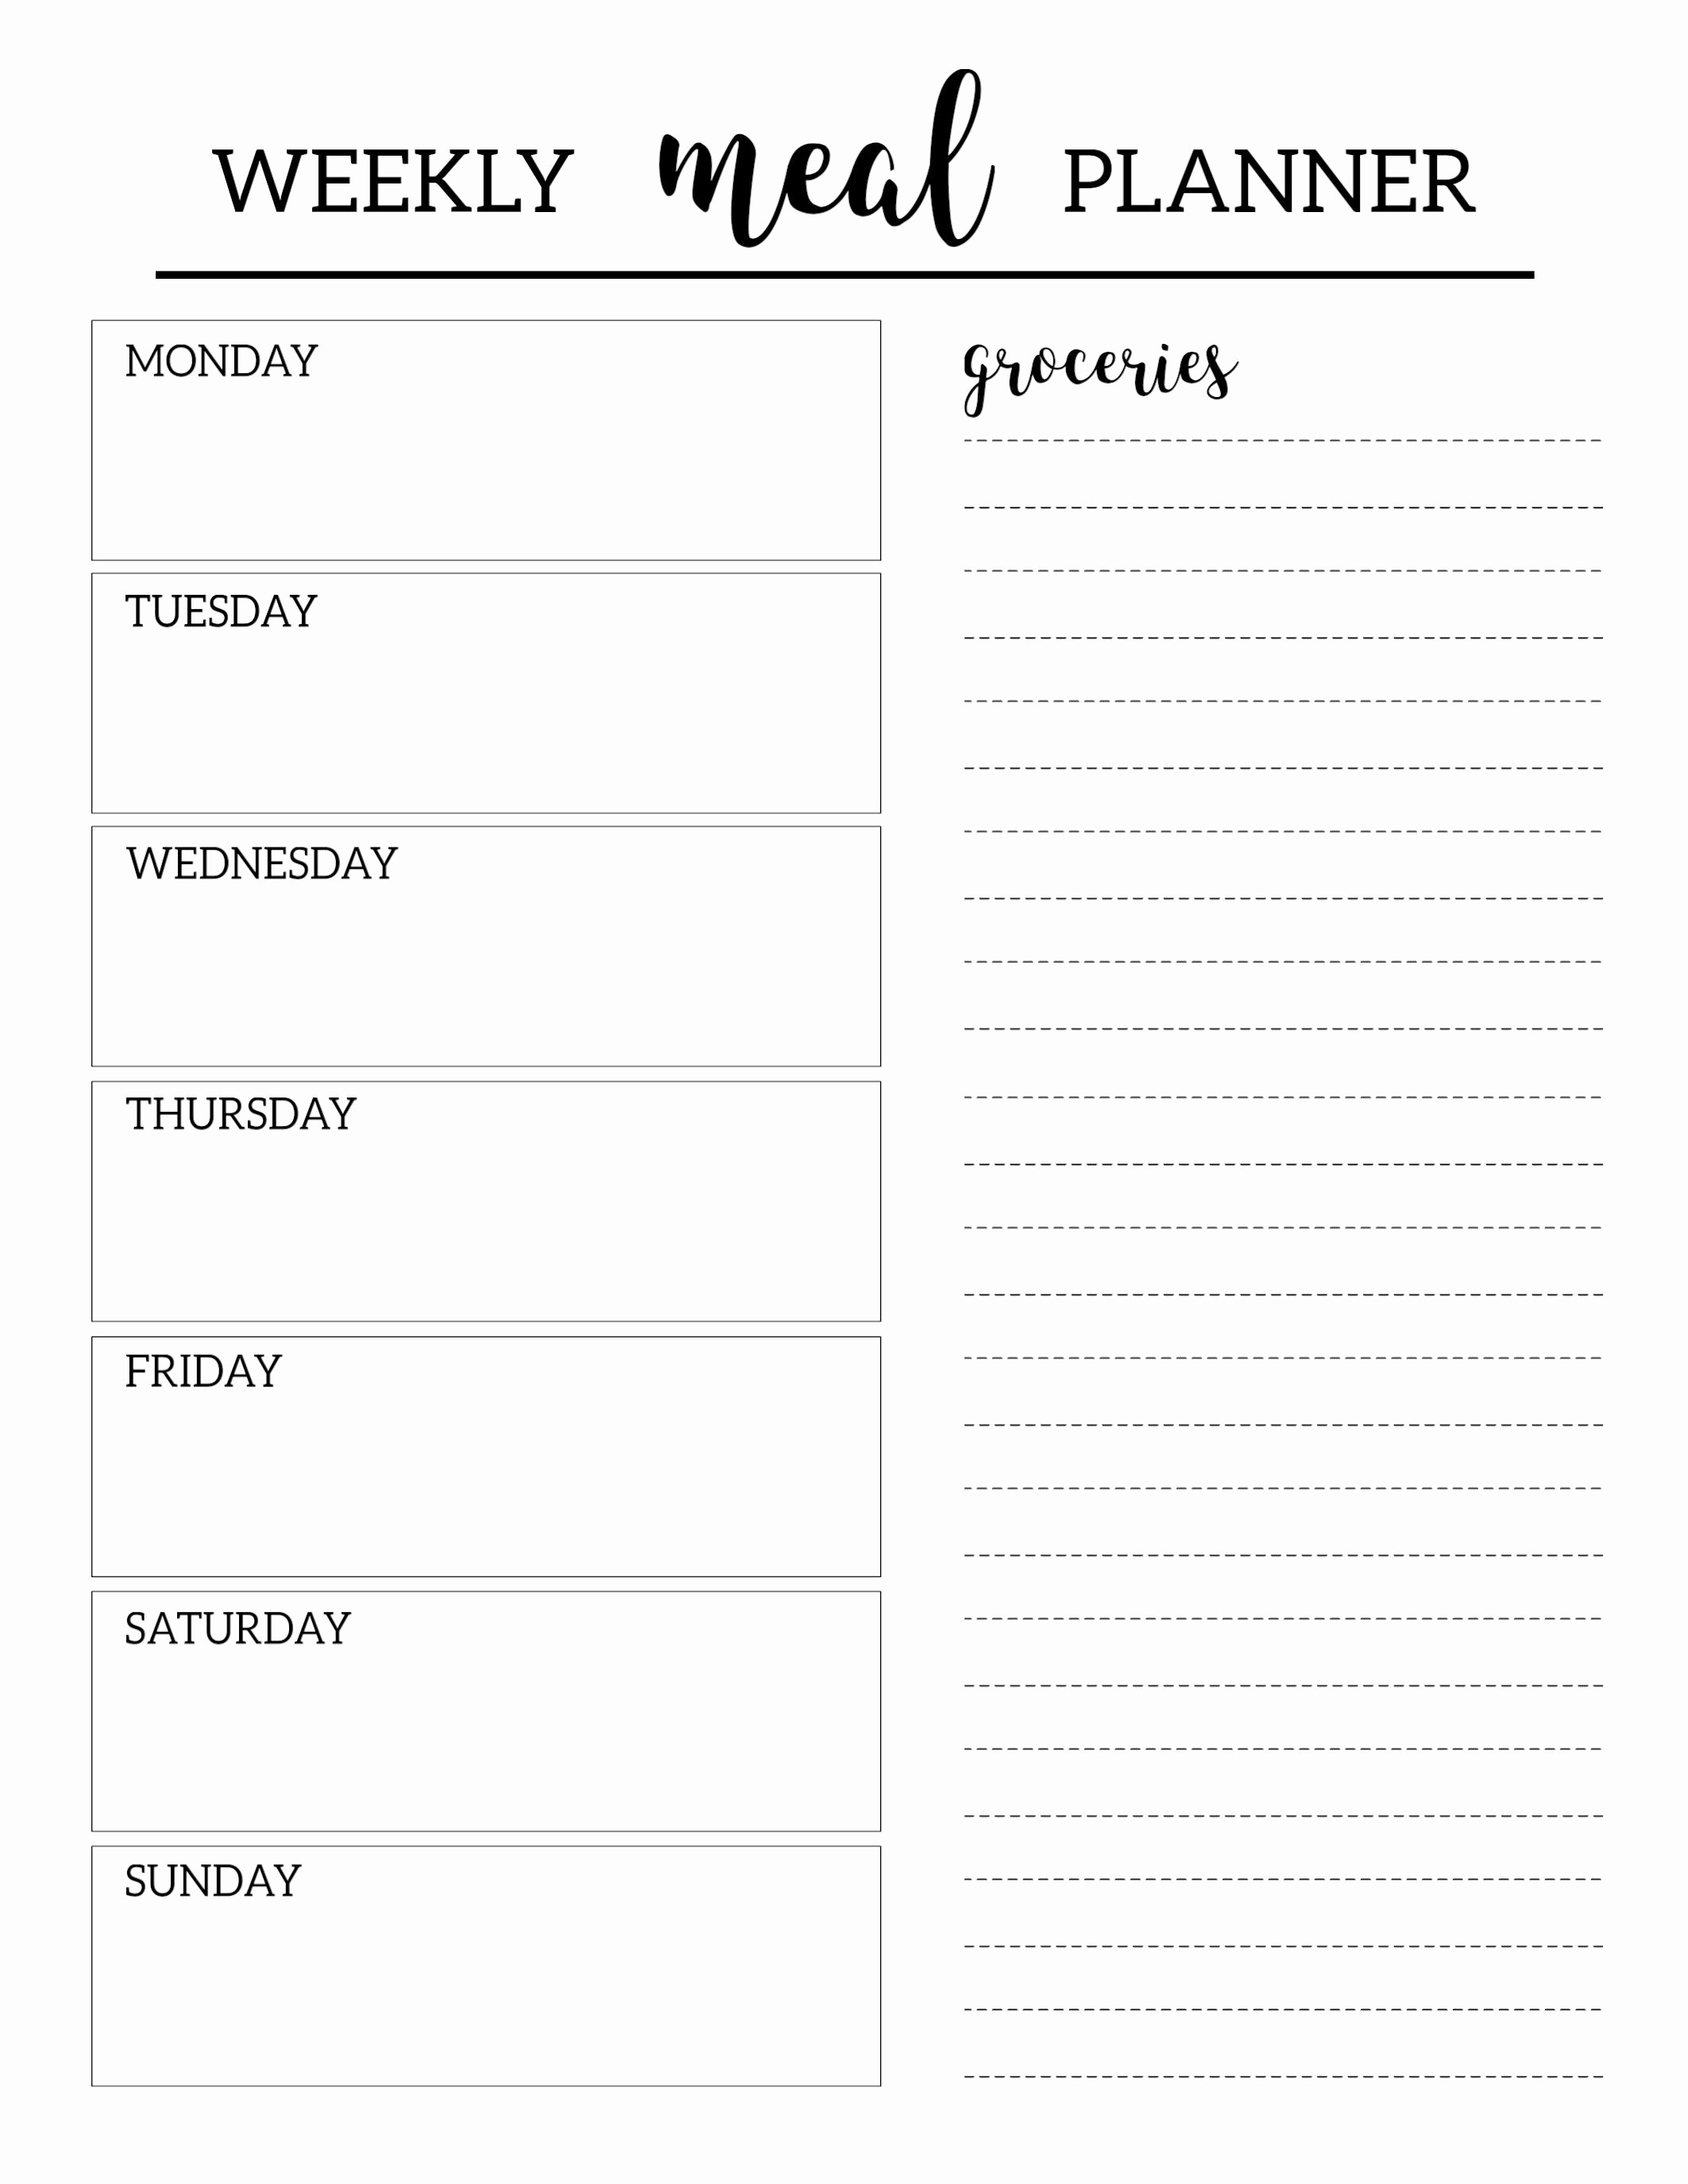 Weekly Meal Planning Template Free Best Of Free Printable Meal Planner Template organization